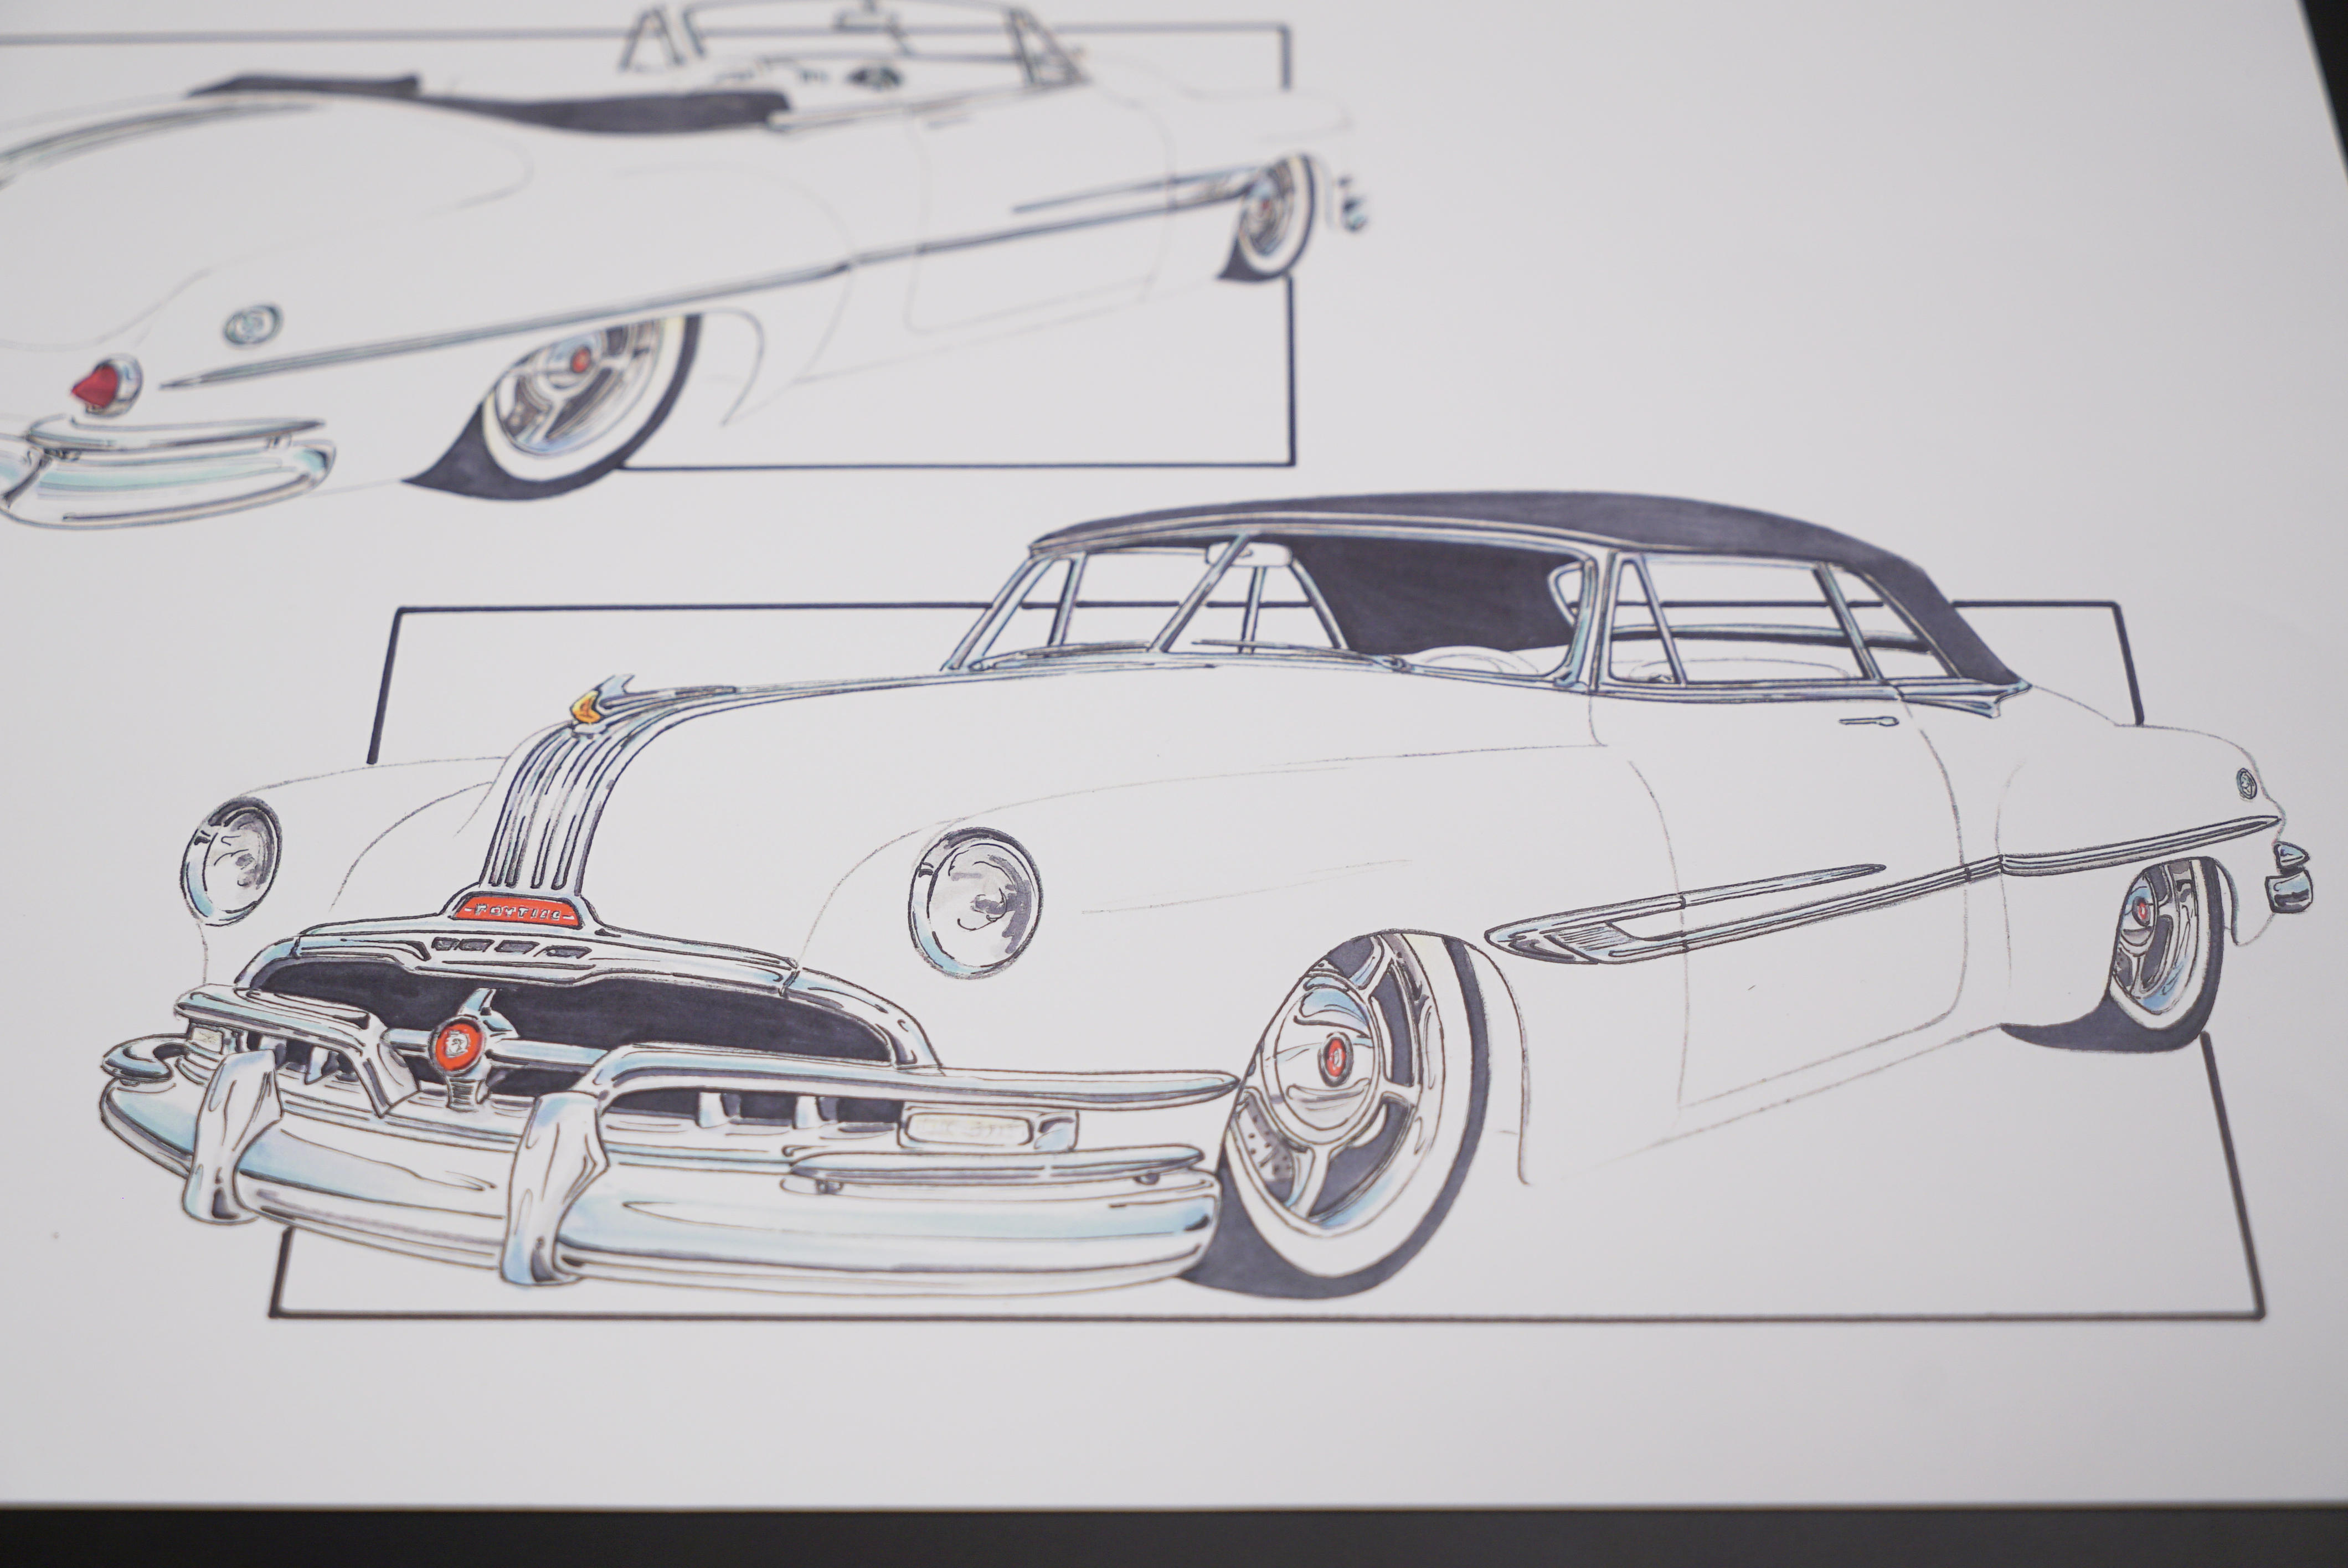 Dave Kindig Breaks Down the 52 Pontiac Chieftain from Bitchin